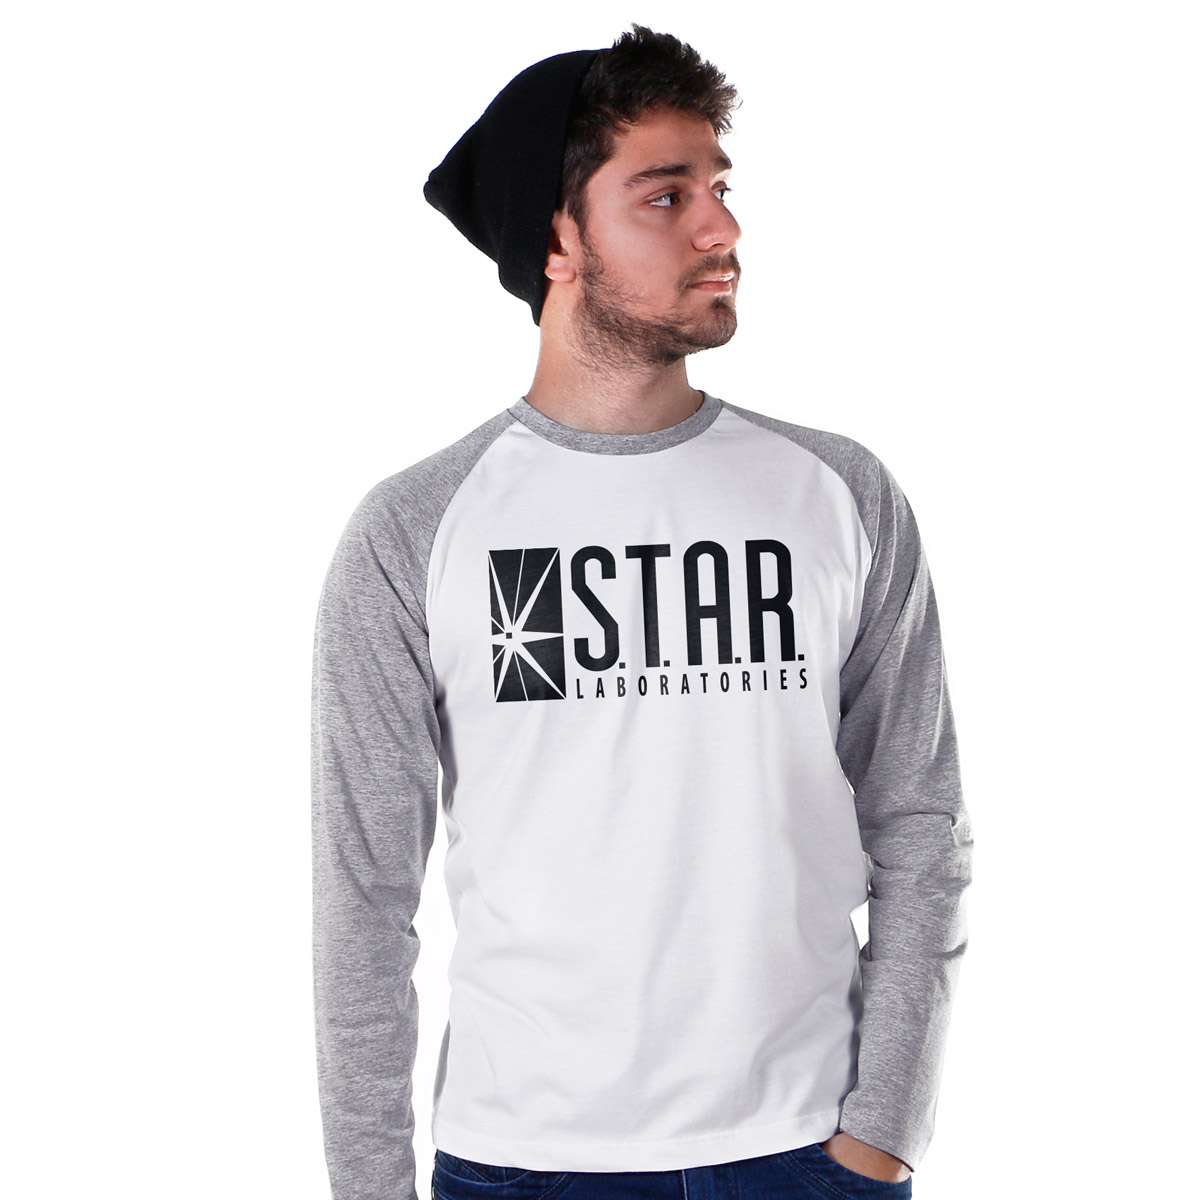 Camiseta Raglan Masculina The Flash Serie STAR Laboratories